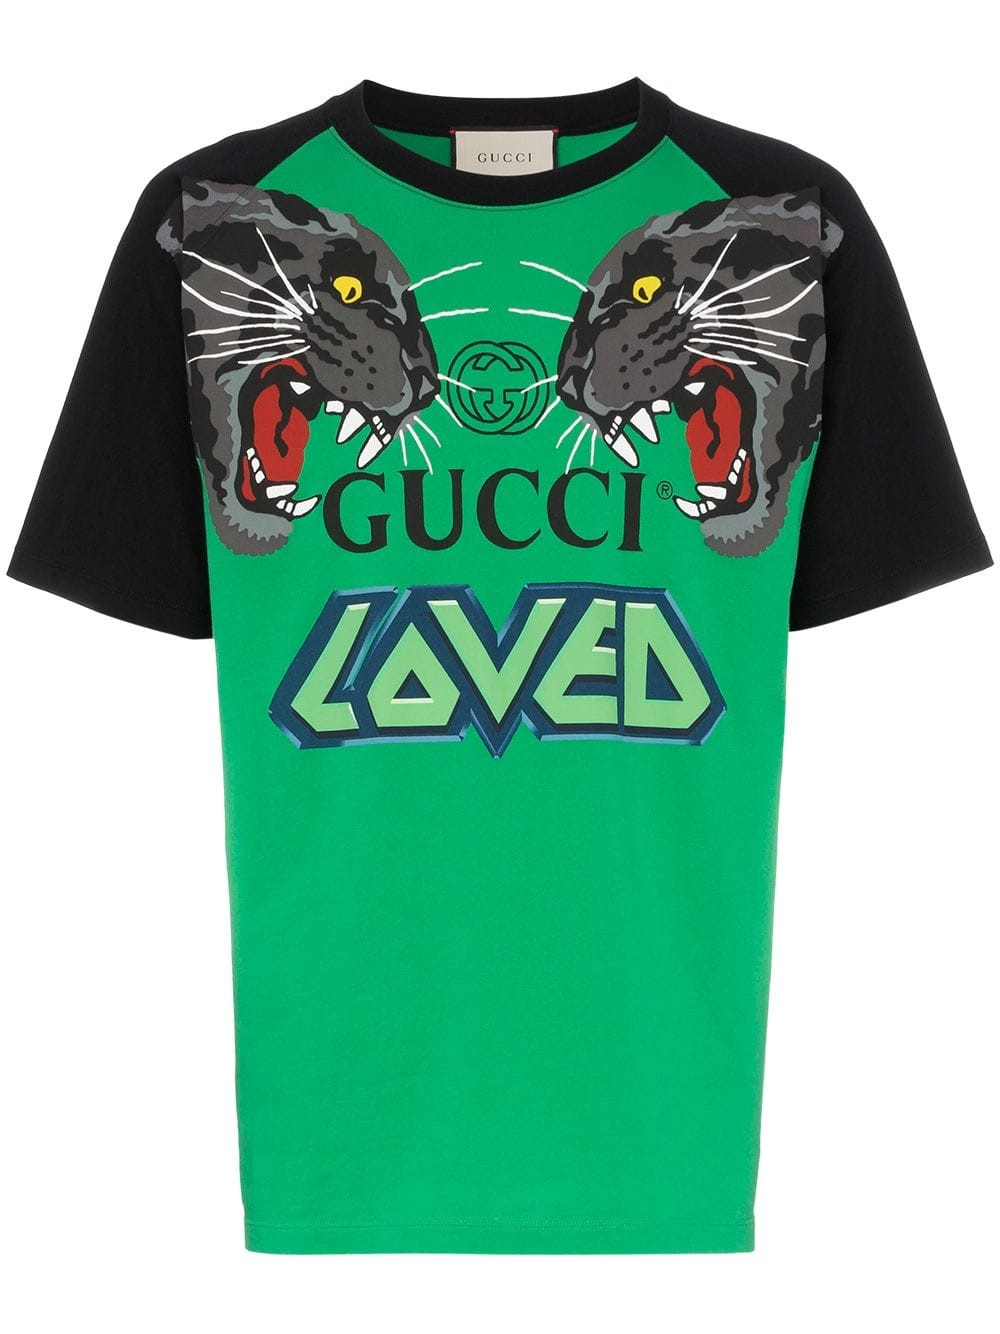 702306ed gucci LOVED T-SHIRT available on montiboutique.com - 26214